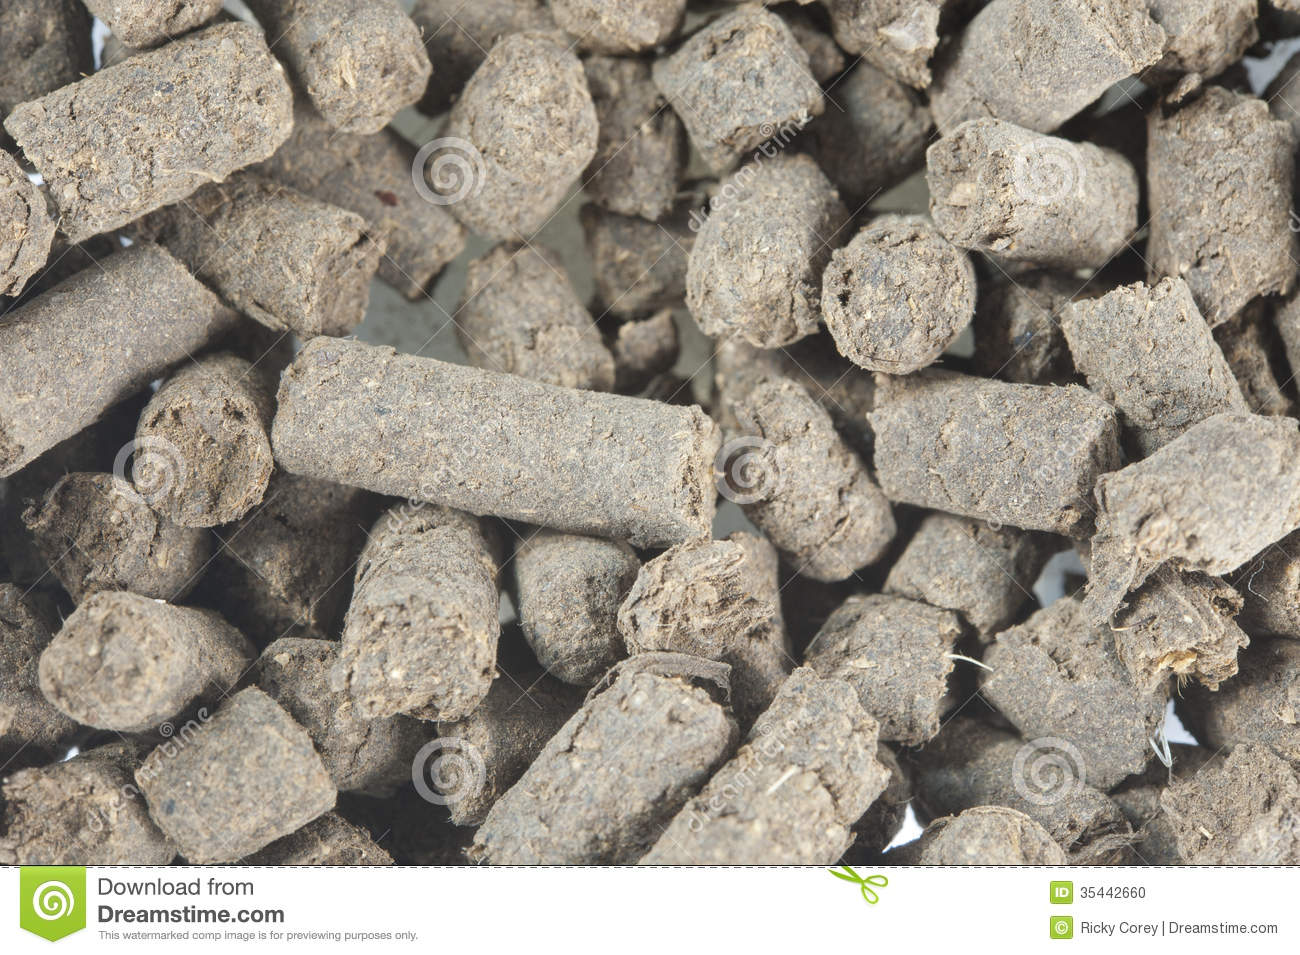 chicken manure pellets stock photo image 35442660. Black Bedroom Furniture Sets. Home Design Ideas